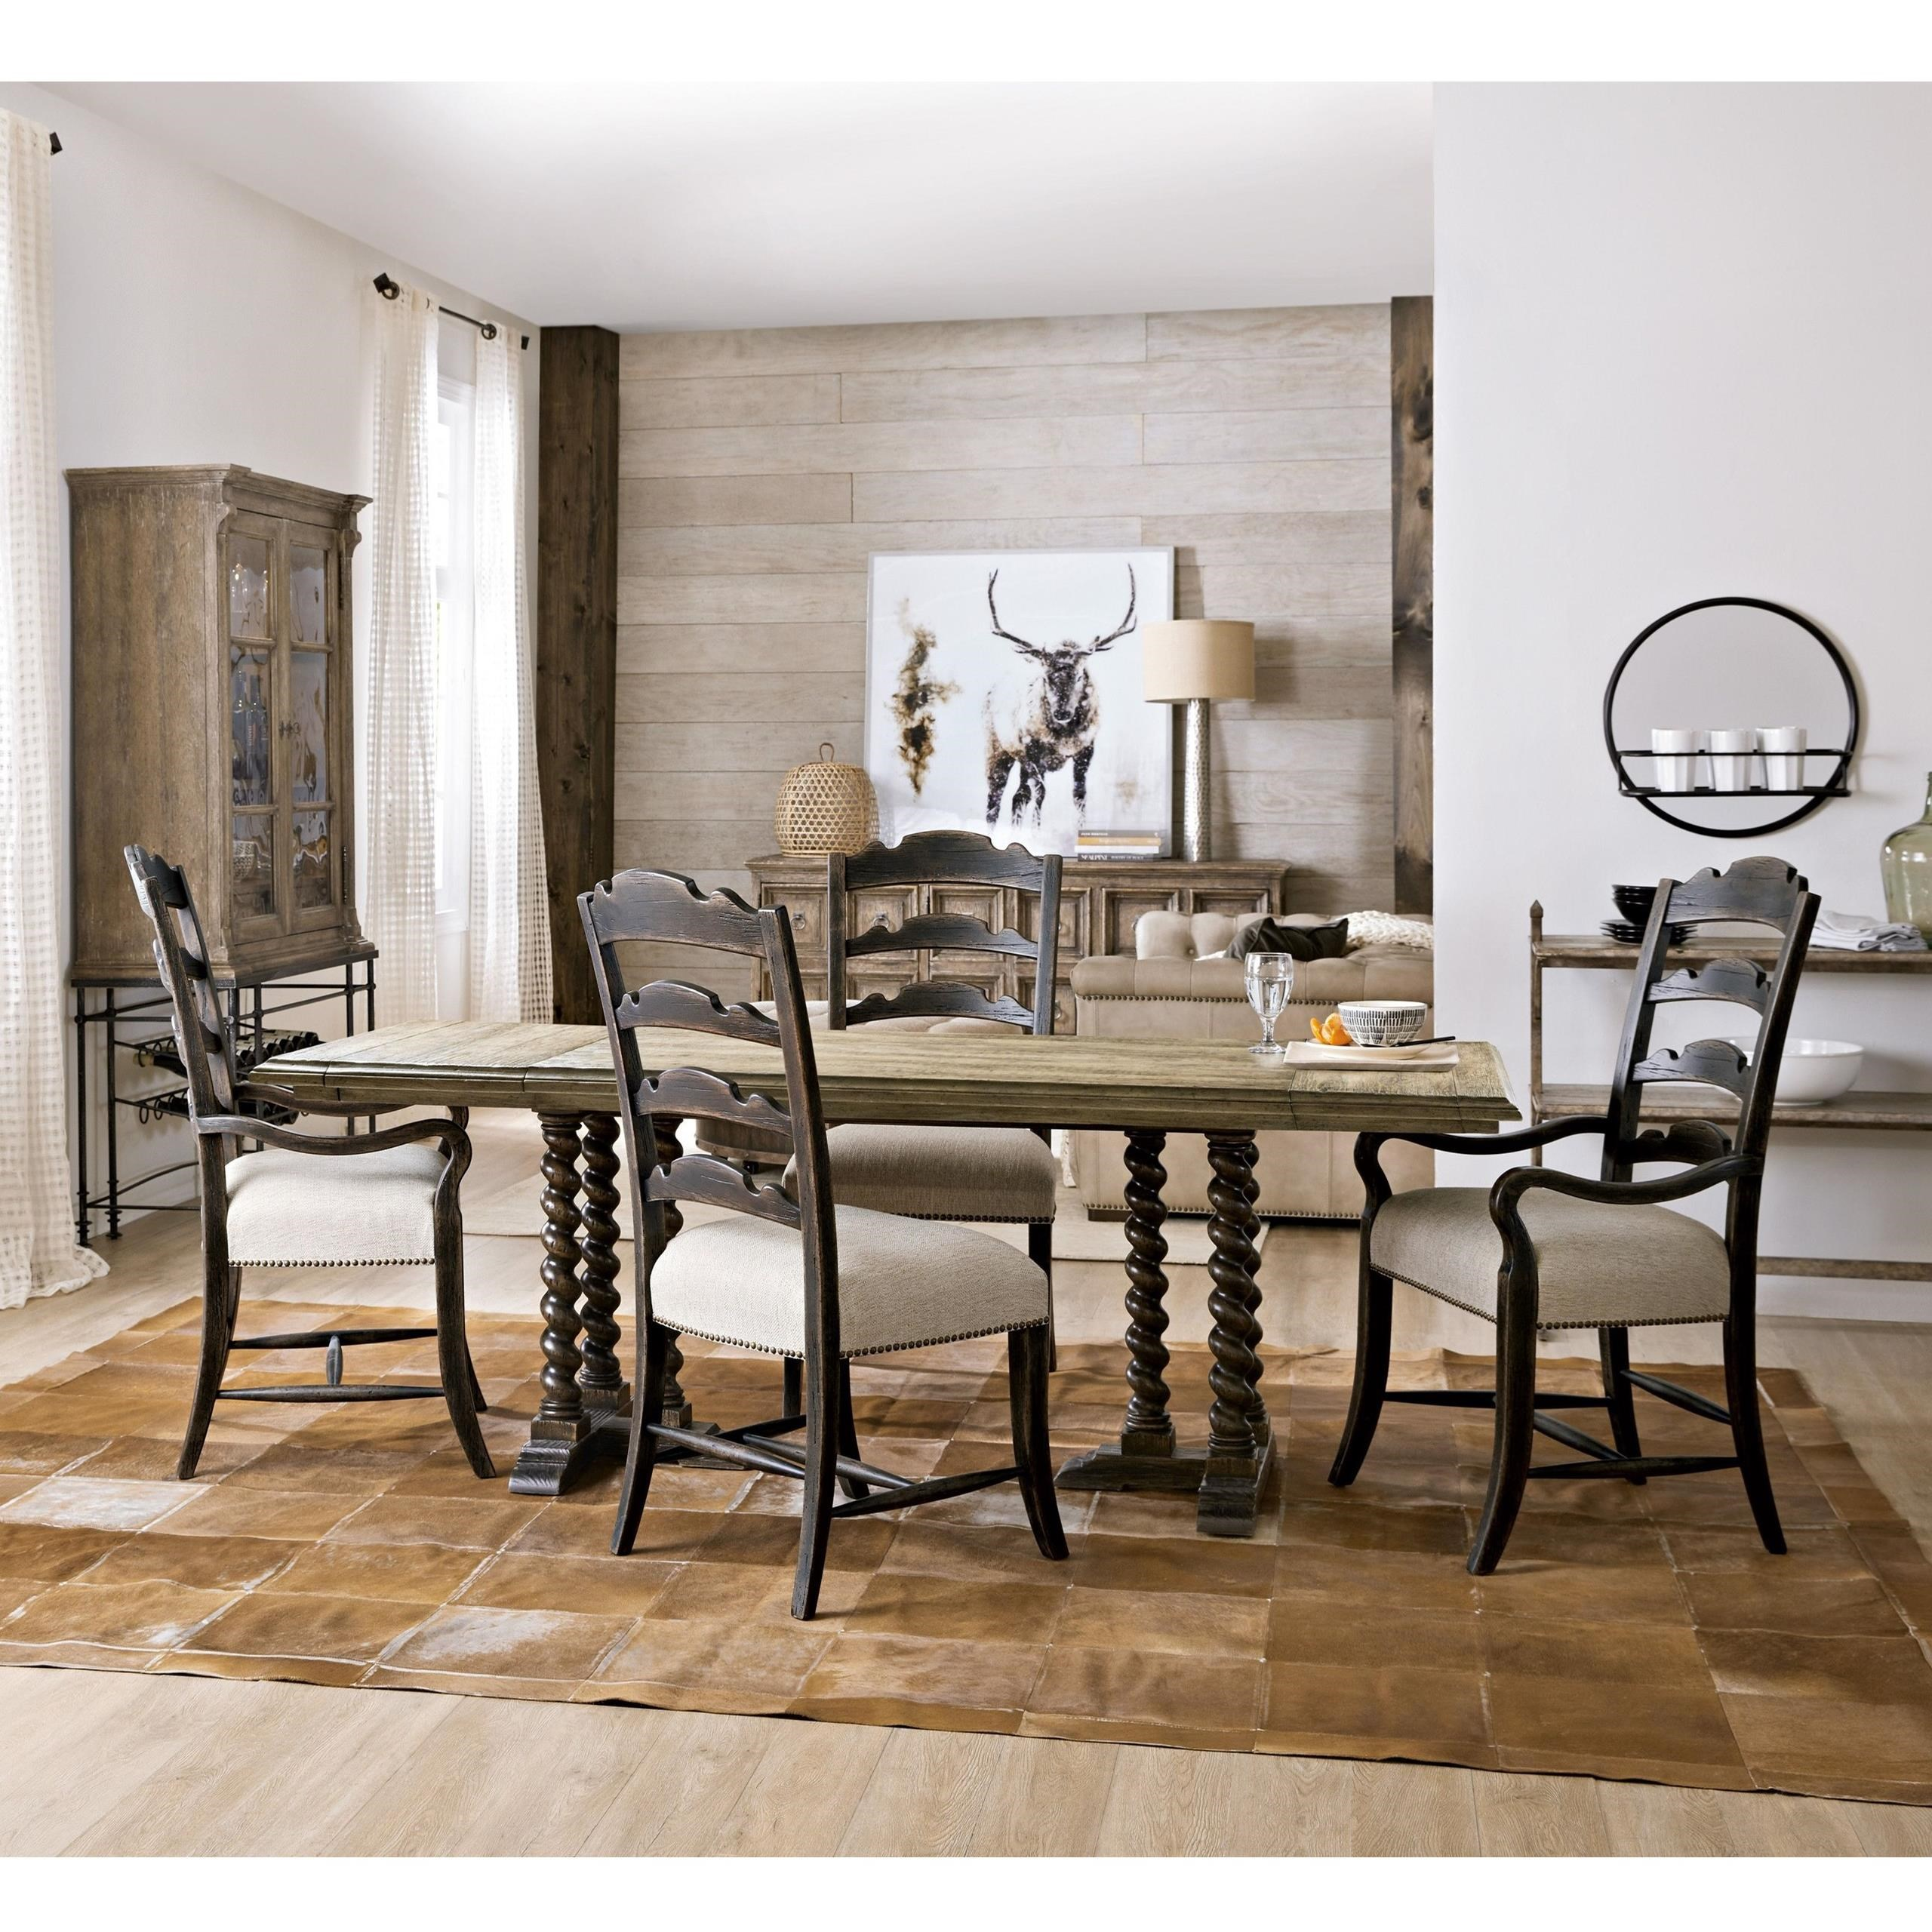 La Grange 5-Piece Table and Chair Set by Hooker Furniture at Baer's Furniture